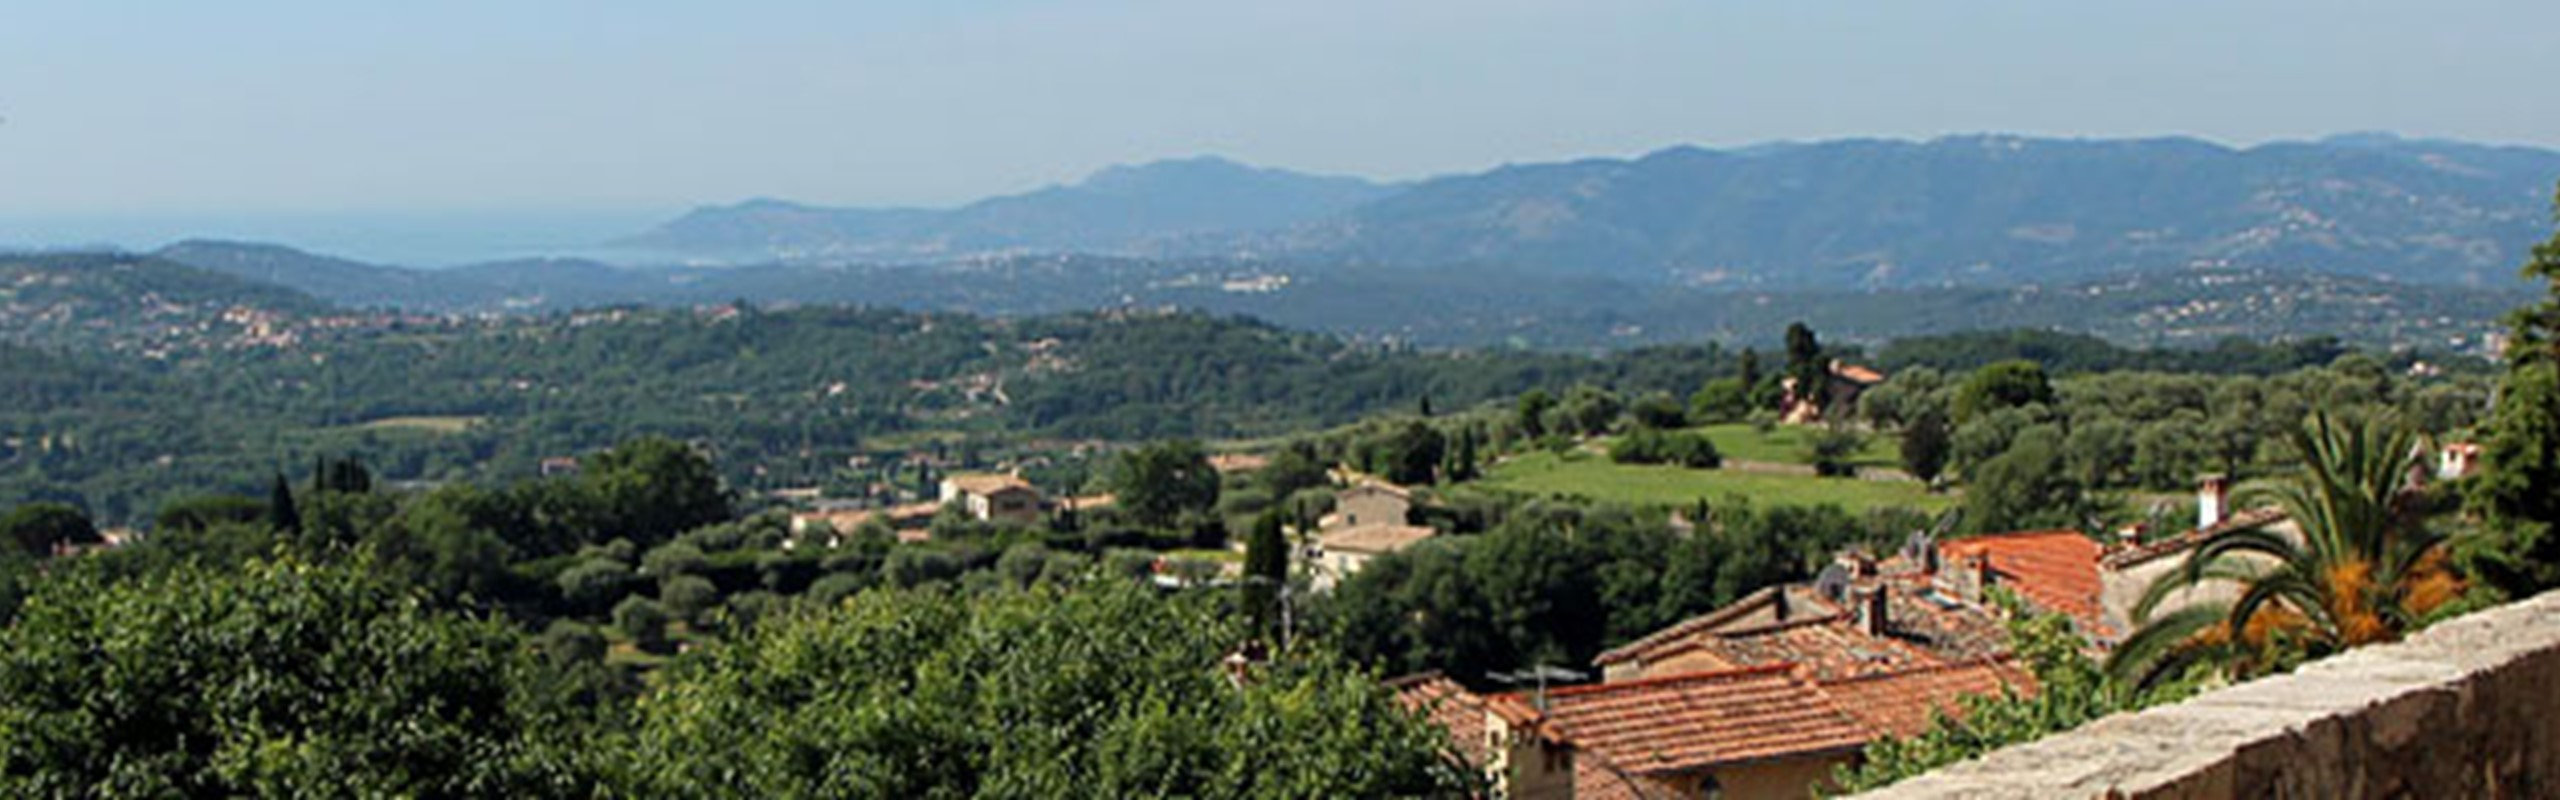 Chateauneuf Grasse View